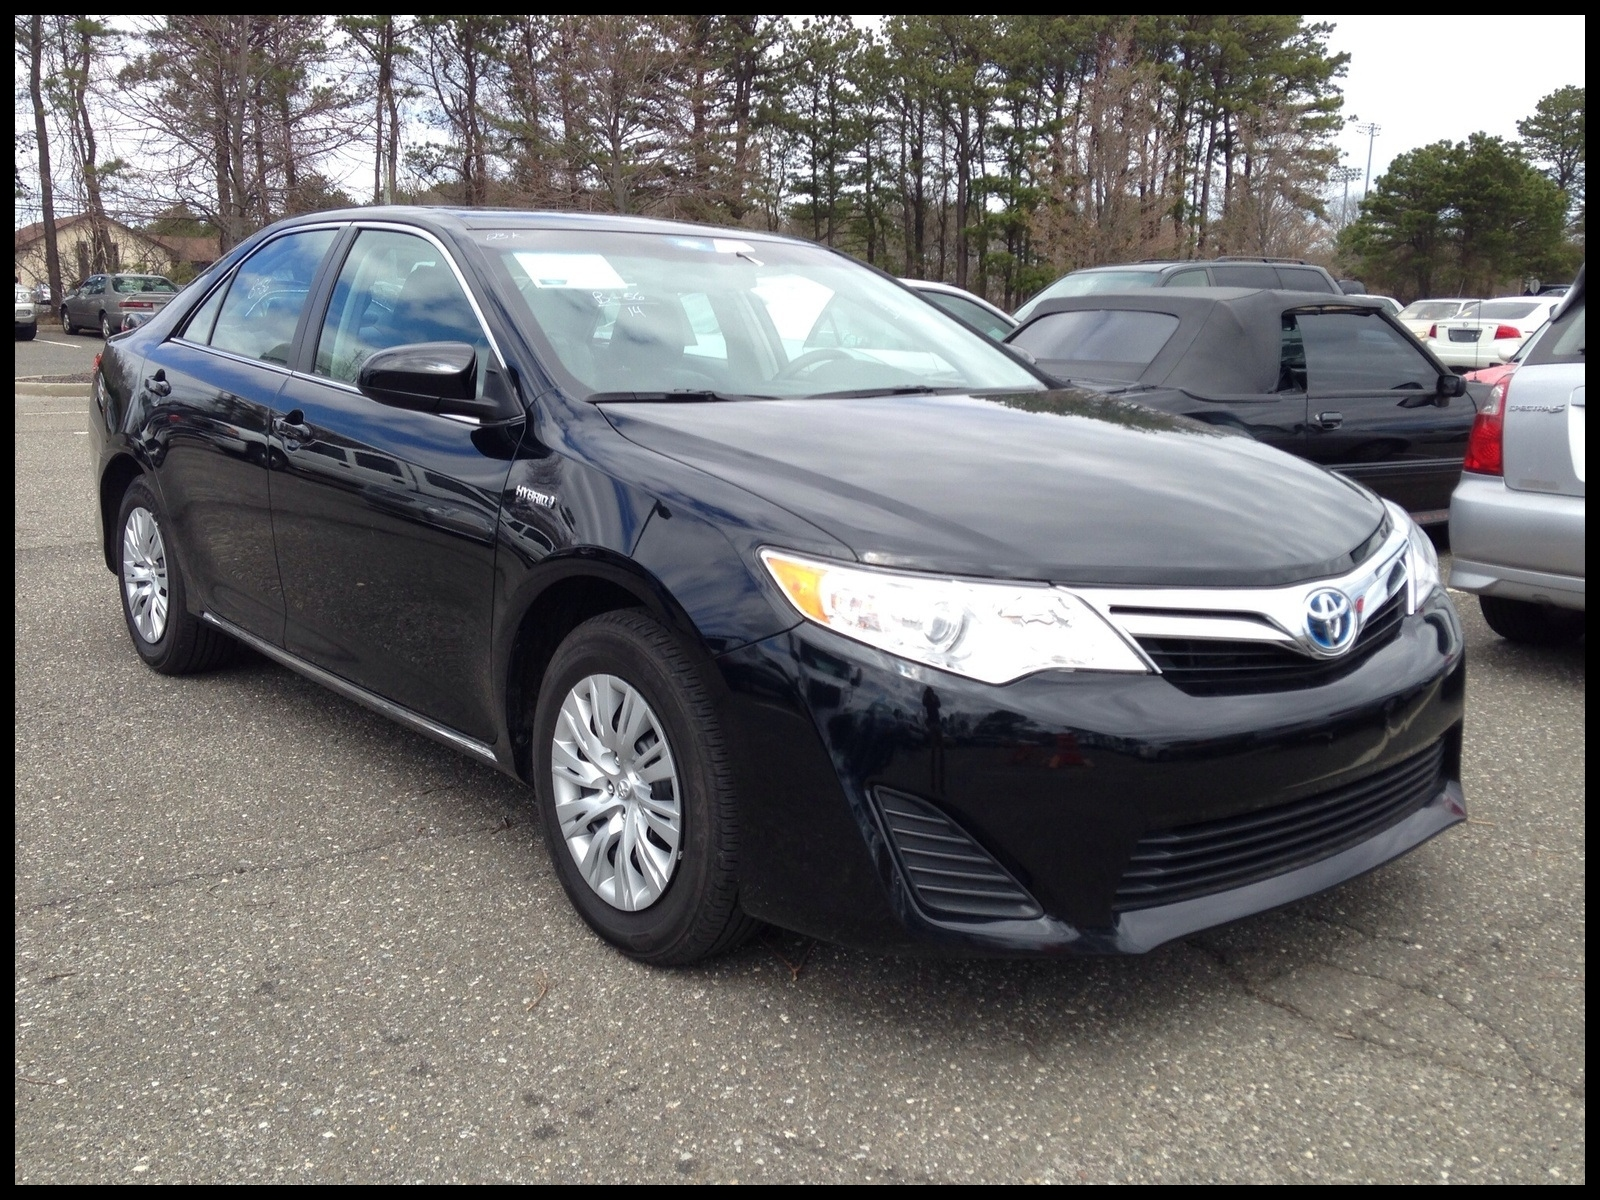 News toyota Camry 2018 Cargurus 2018 toyota Camry Overview Cargurus2017 Overview and Price